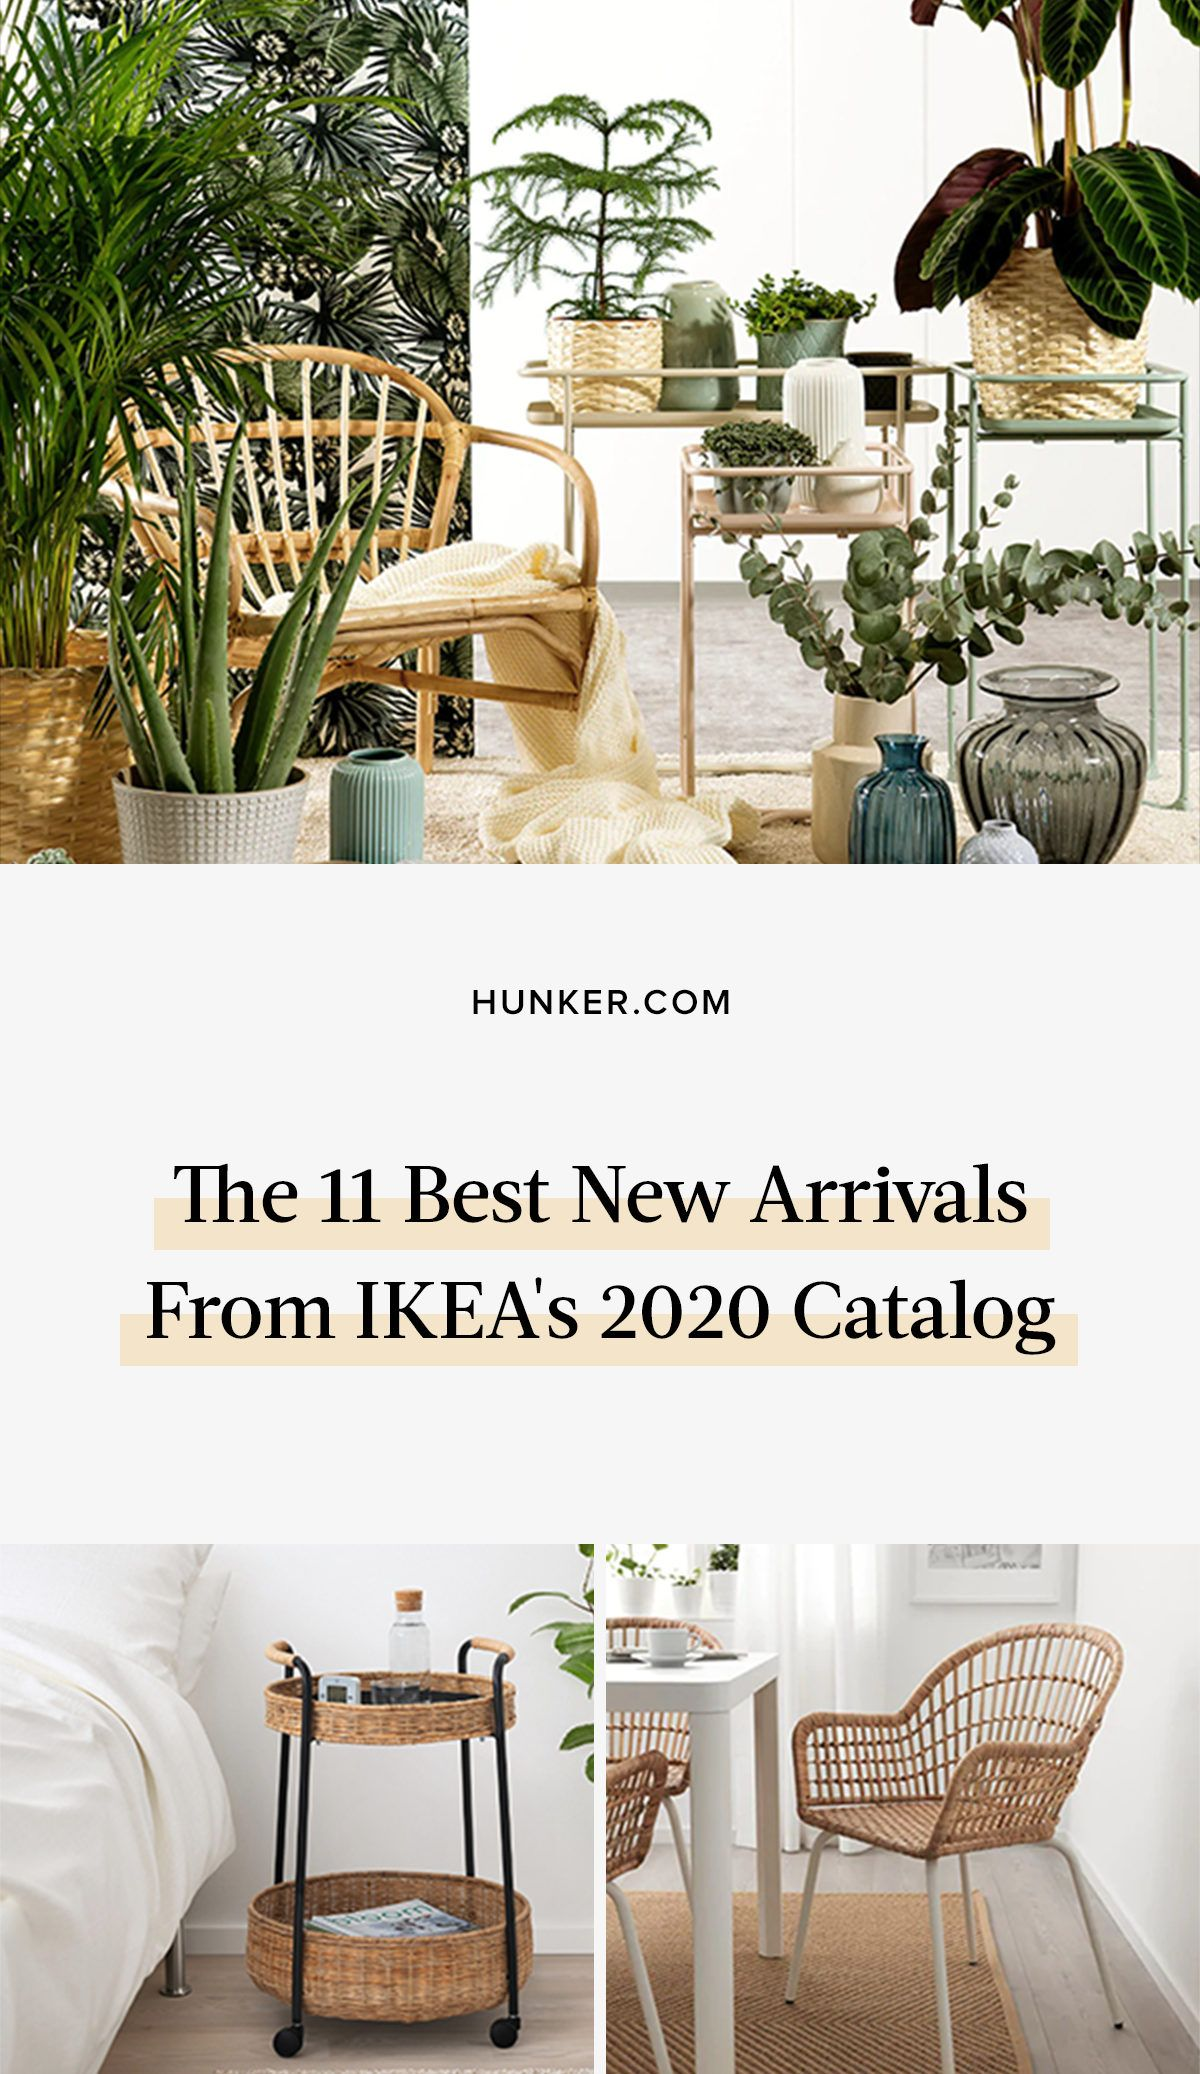 The 11 Best New Arrivals From Ikea S 2020 Catalog Hunker Home Furnishing Accessories Trending Decor Ikea New